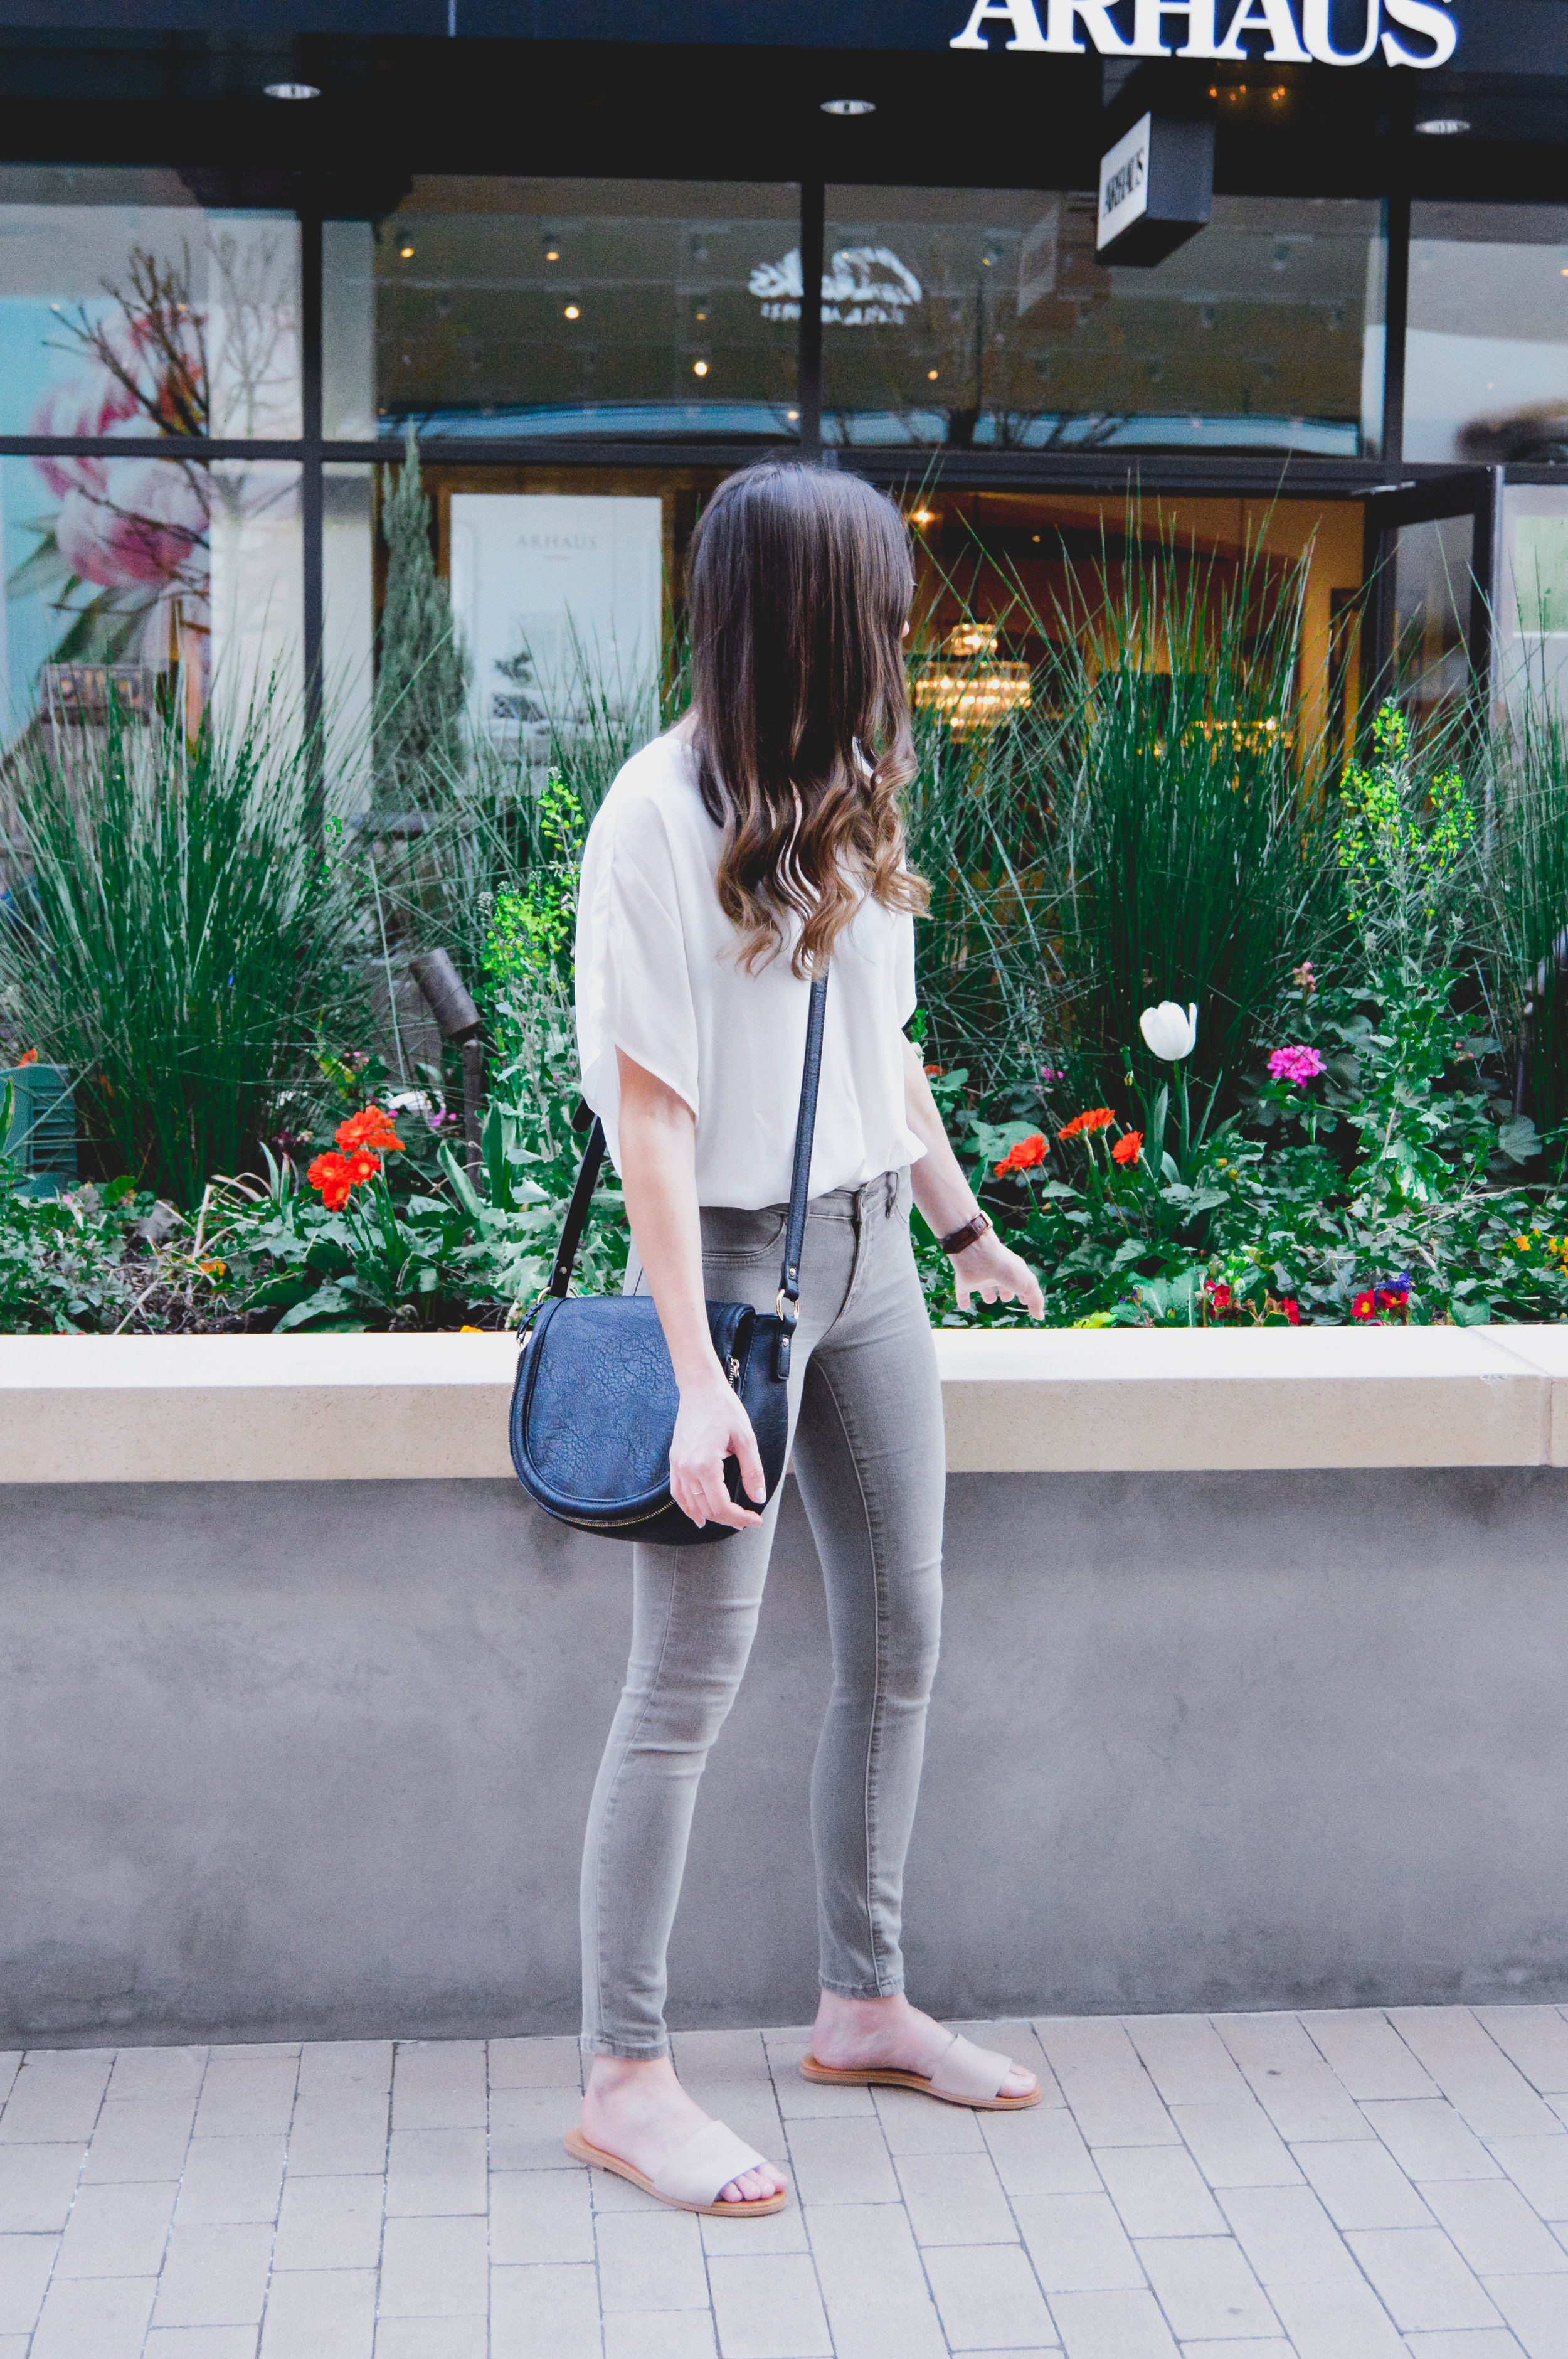 Olive jeans and white top outfit